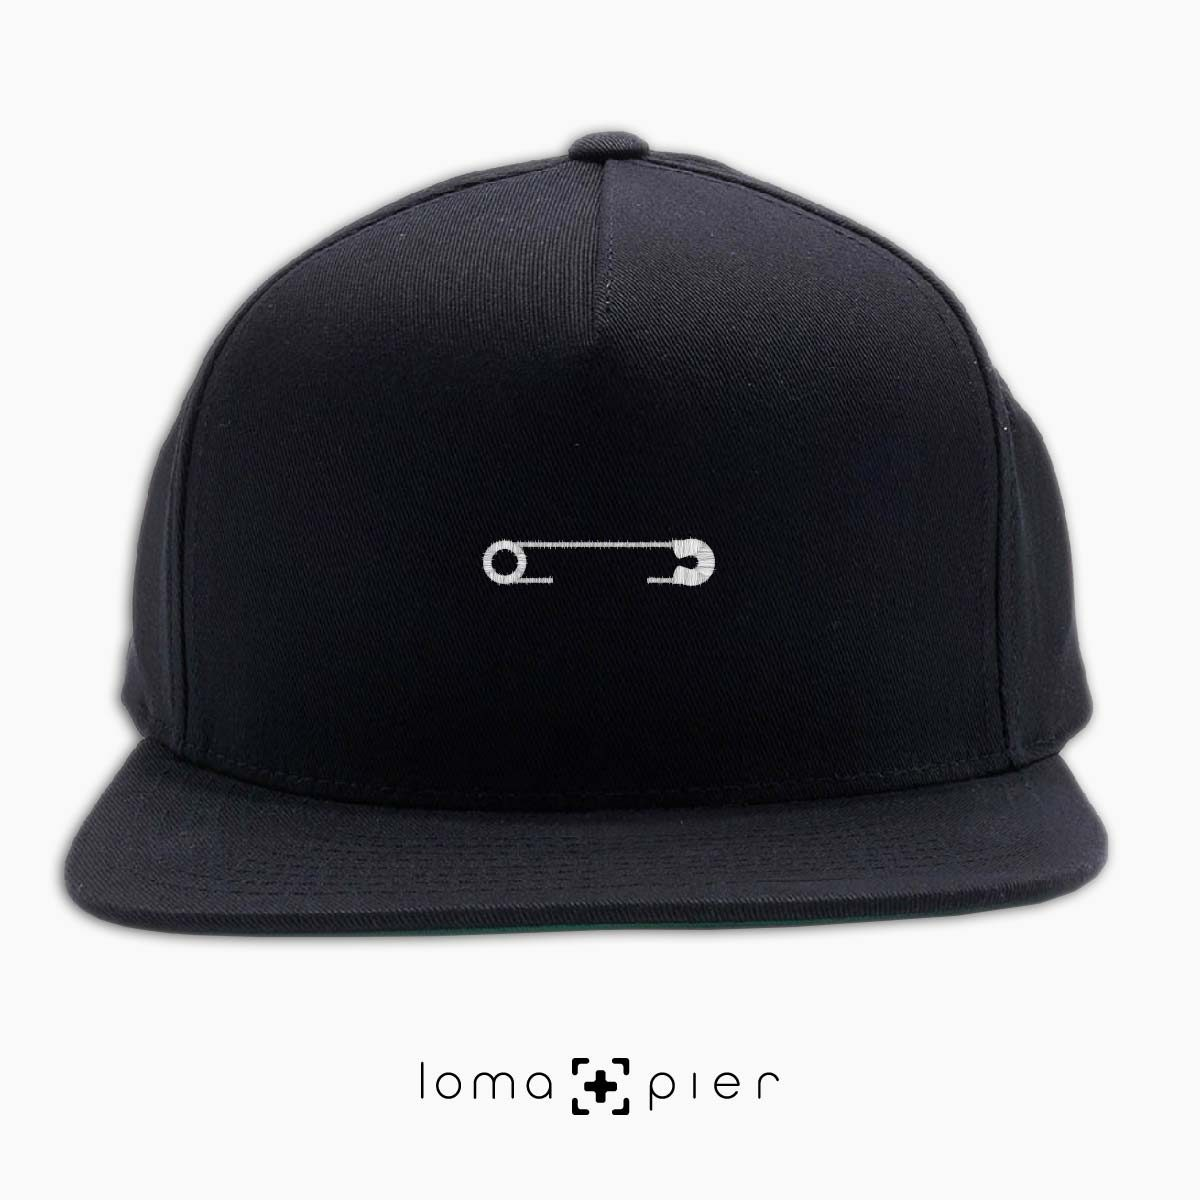 SAFETY PIN icon embroidered on a black classic snapback with white thread by loma+pier hat store